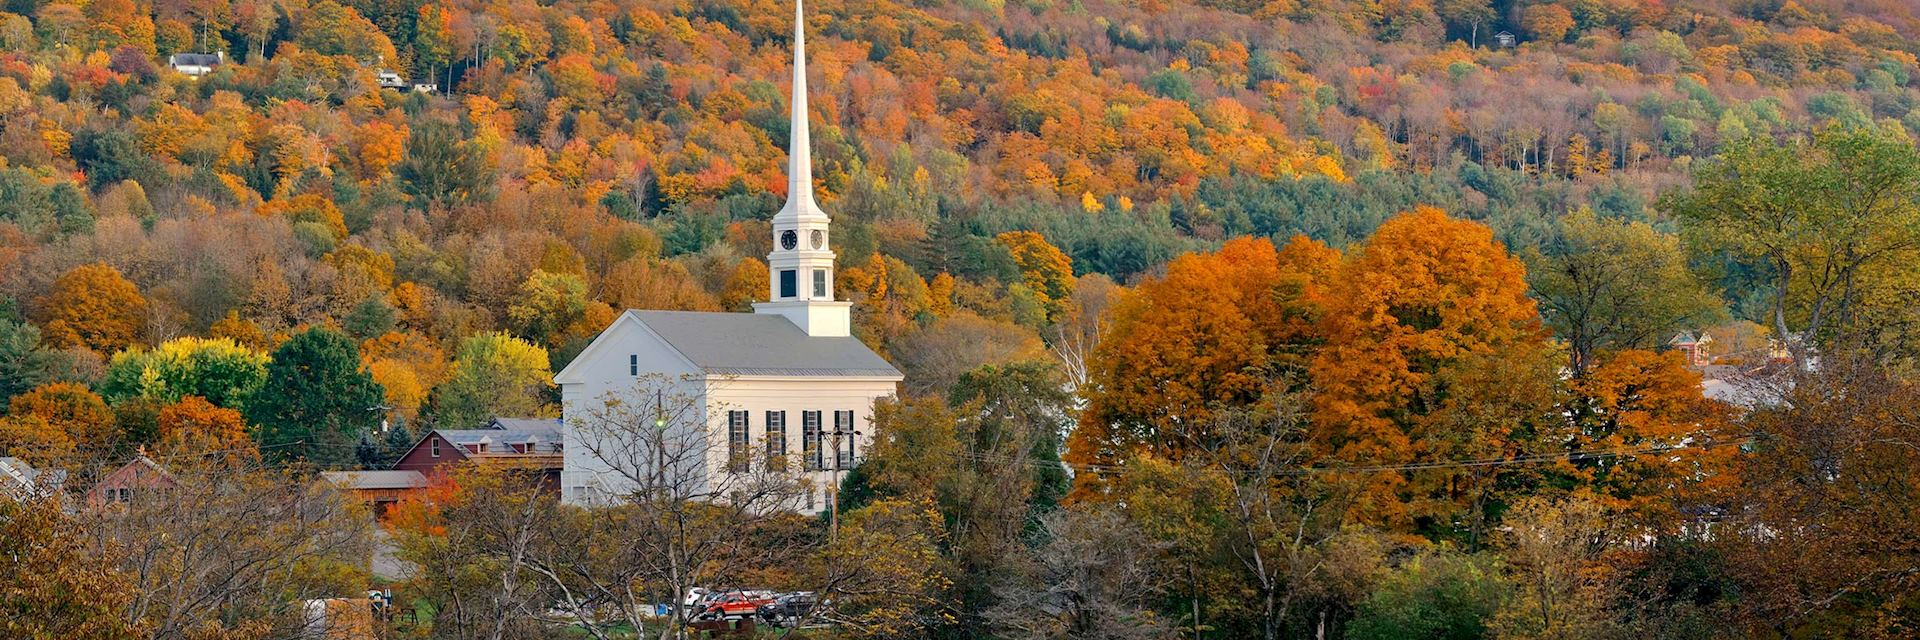 Autumn in Vermont, New England